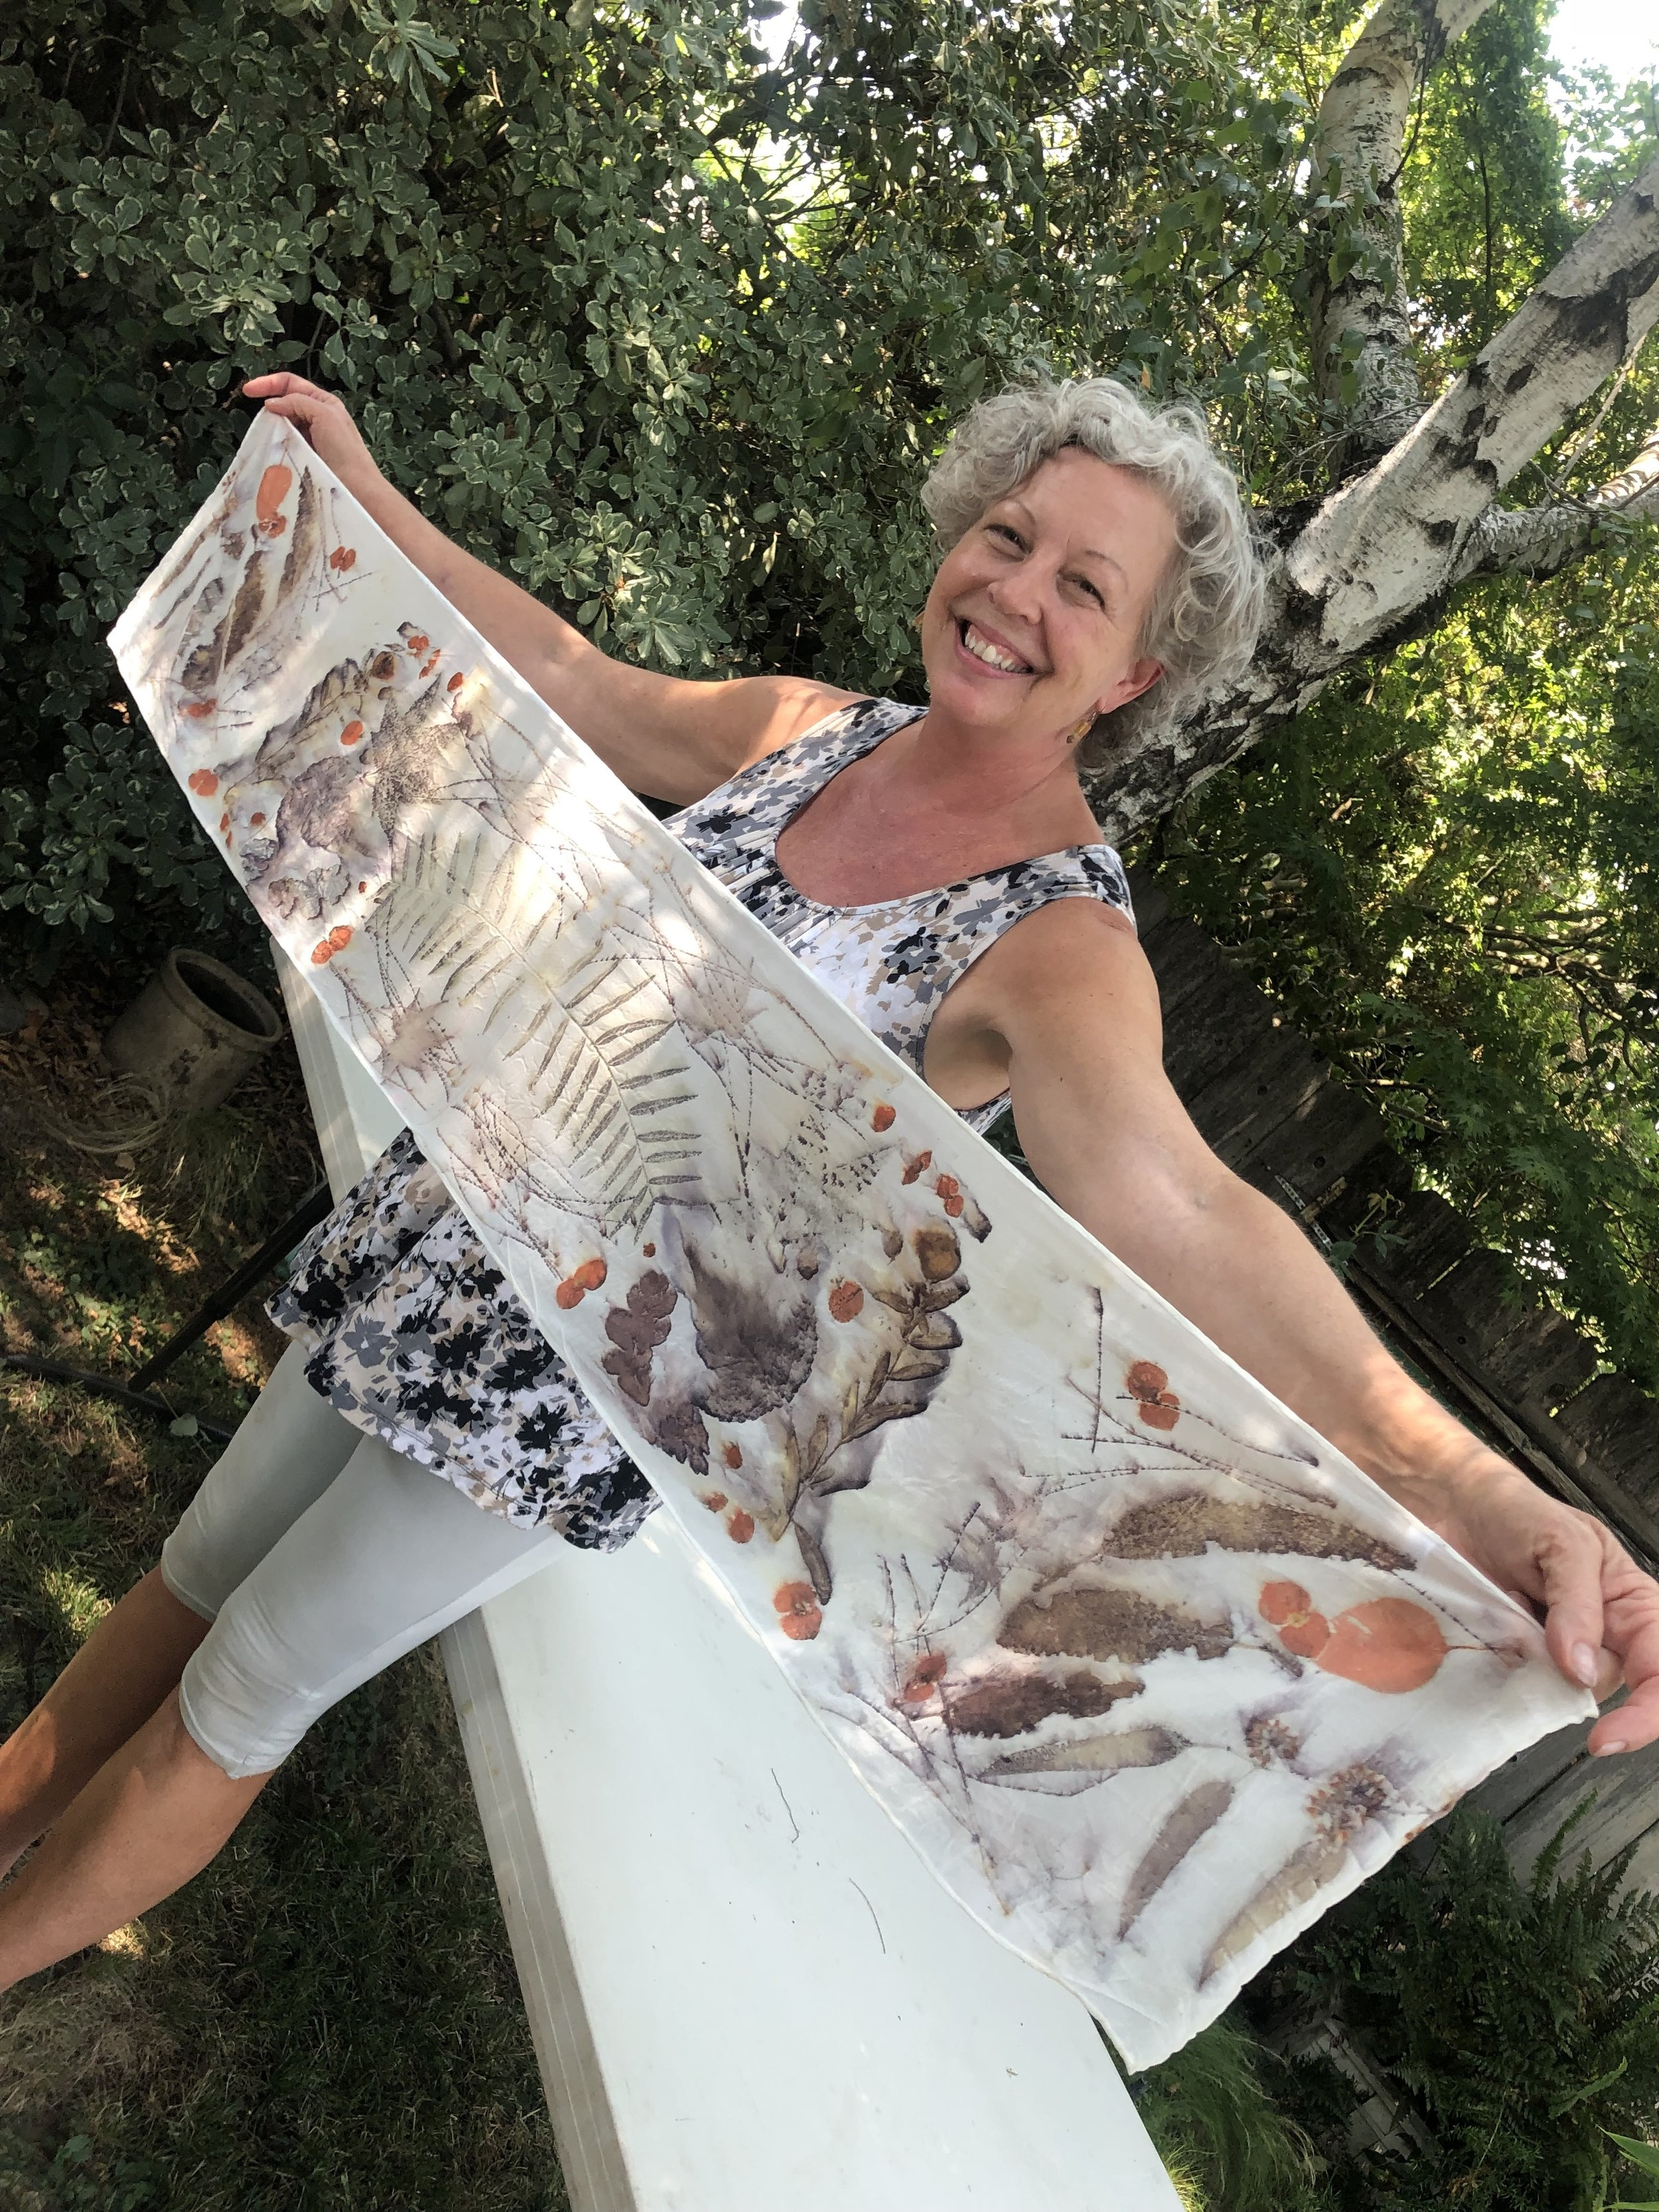 I LOVE learning new things! In August I was taught the art of Eco-Printing or Botanical printing. I could go on for DAYS about all the details but suffice it to say you can turn a plain piece of silk into a beautifully printed scarf using leaves from the neighborhood and a little bit of secret sauce! Classes coming…